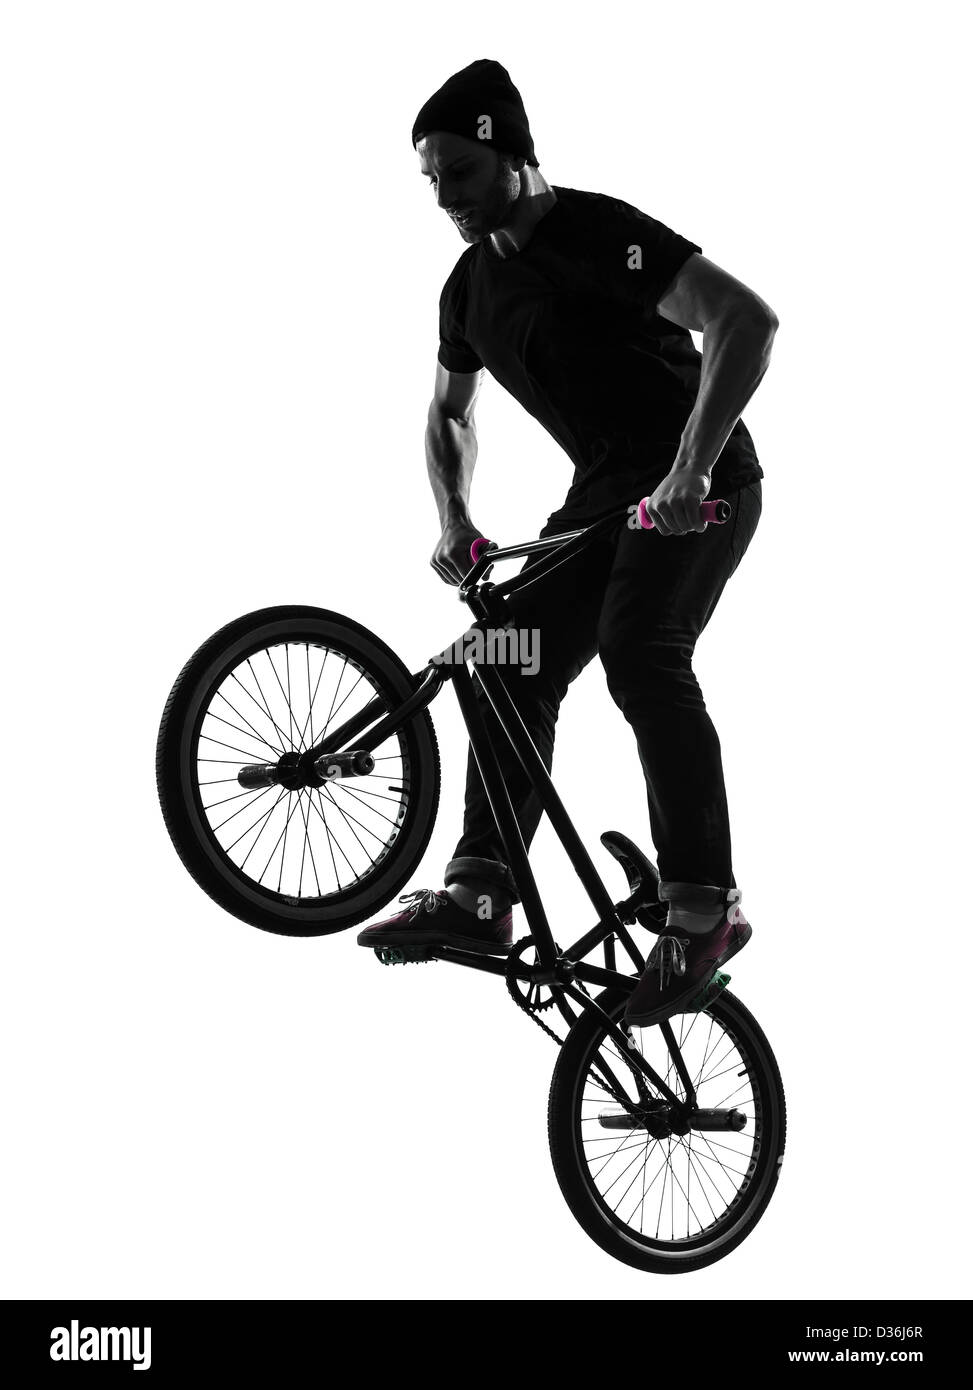 one  man exercising bmx acrobatic figure in silhouette studio isolated on white background - Stock Image